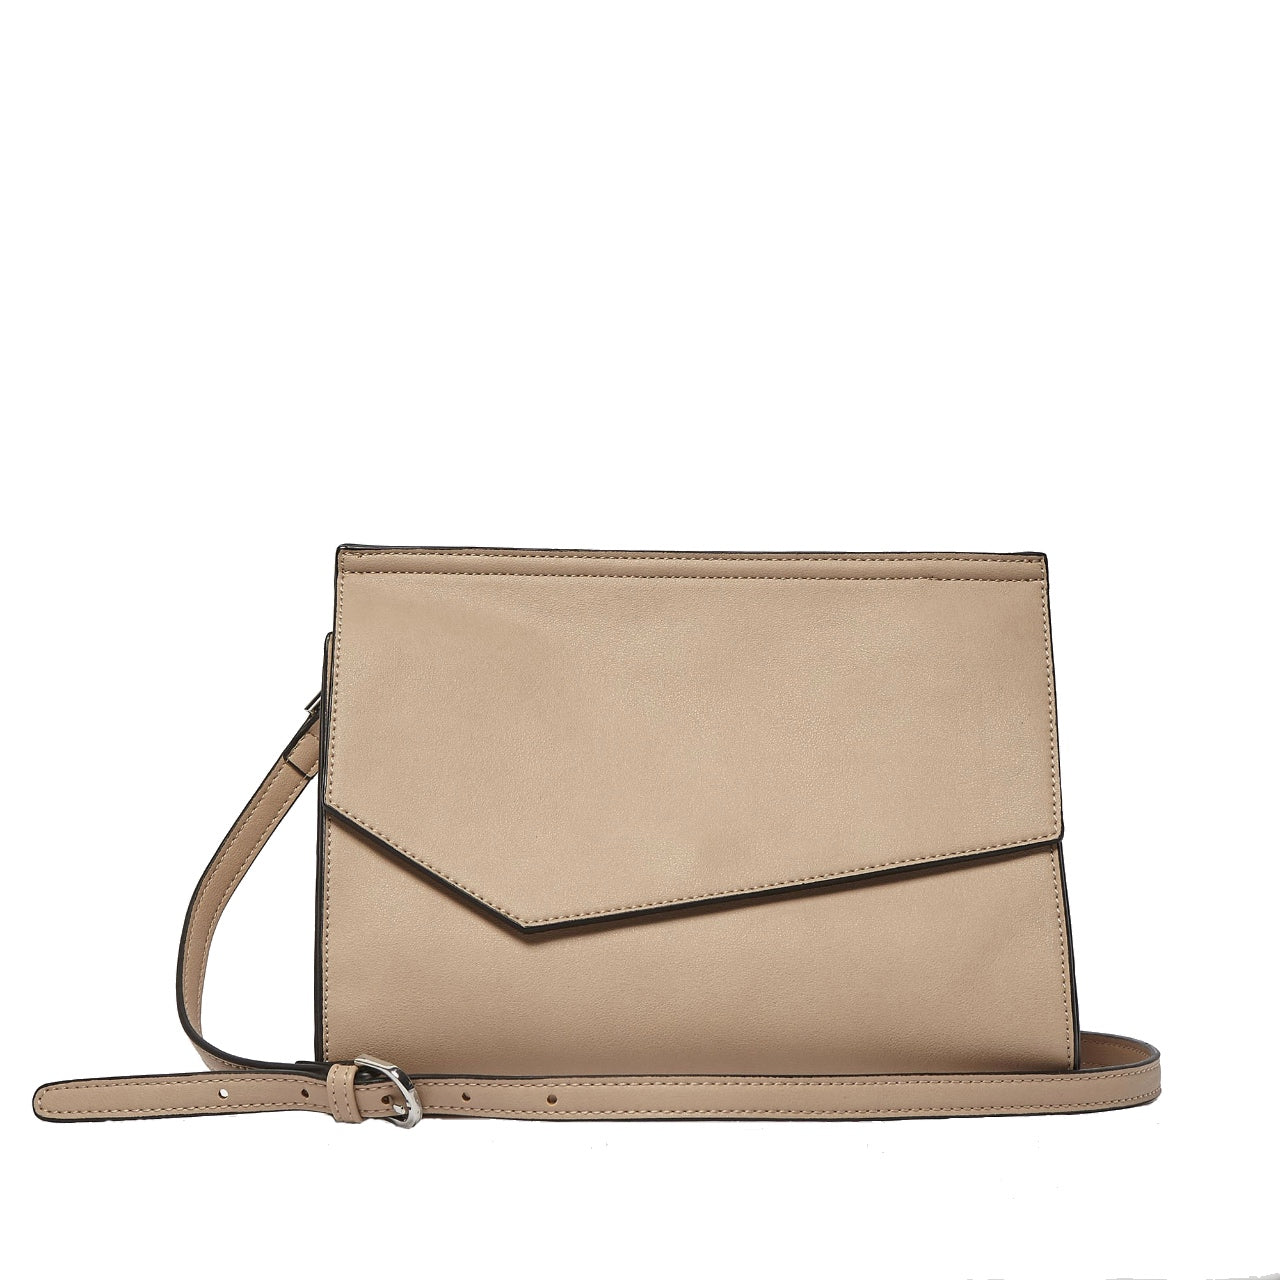 Urban Originals Shimmer Bag -Light Nude